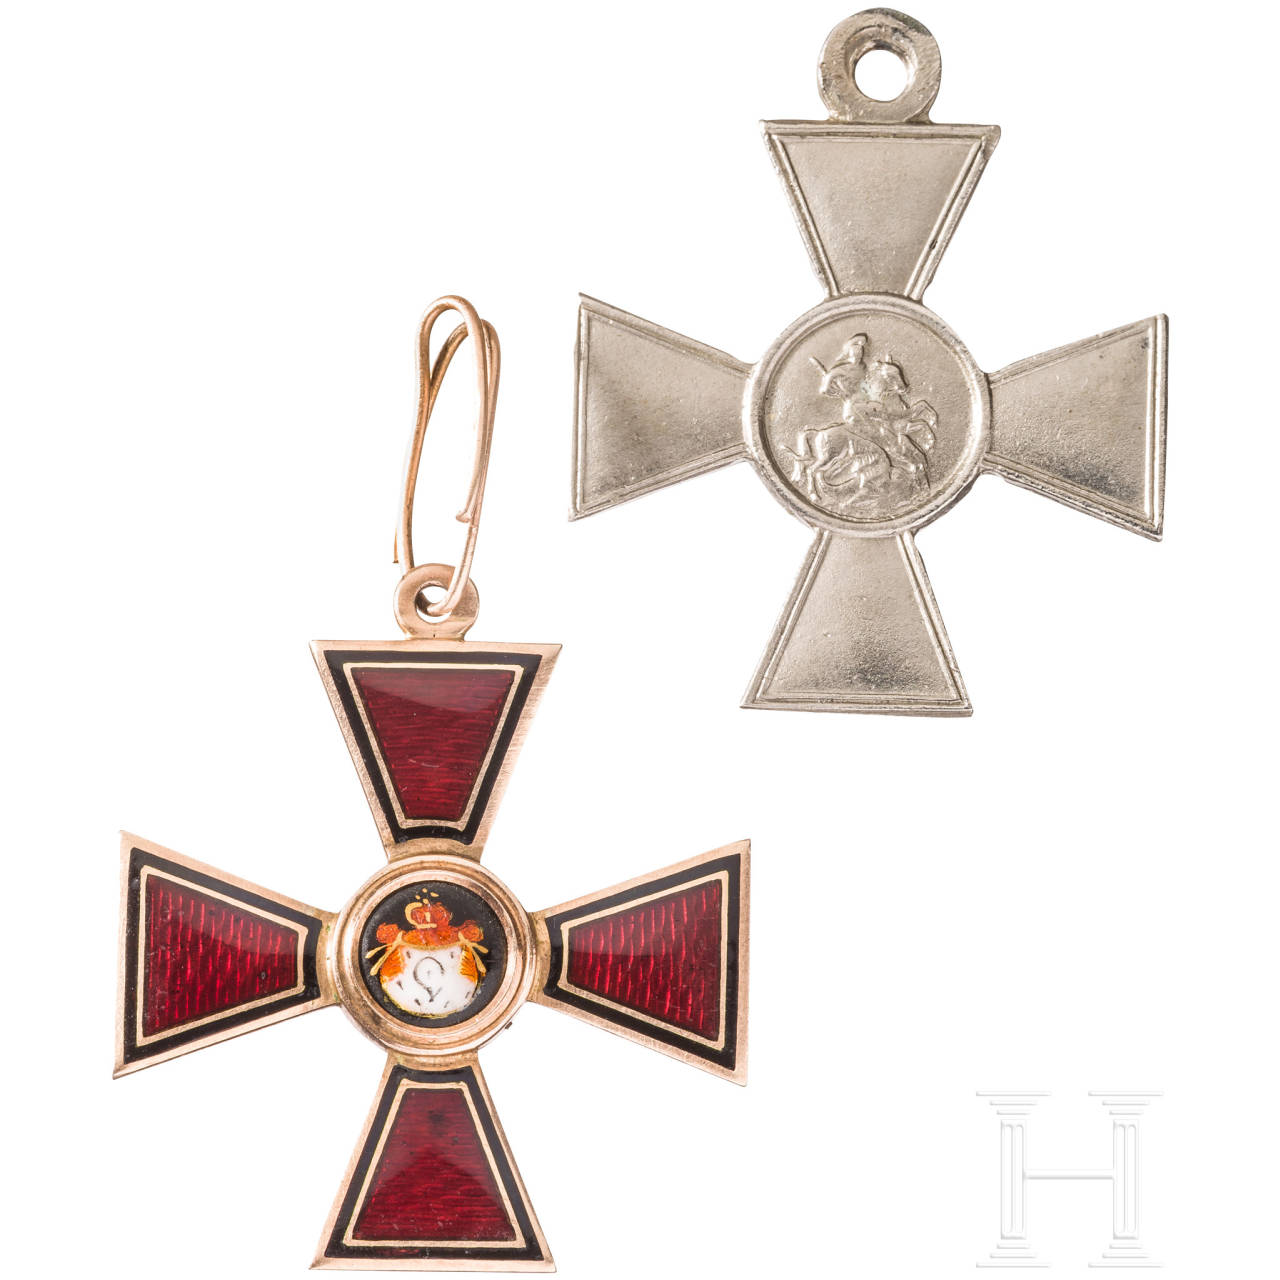 Order of St. Vladimir, cross 4th class, around 1870